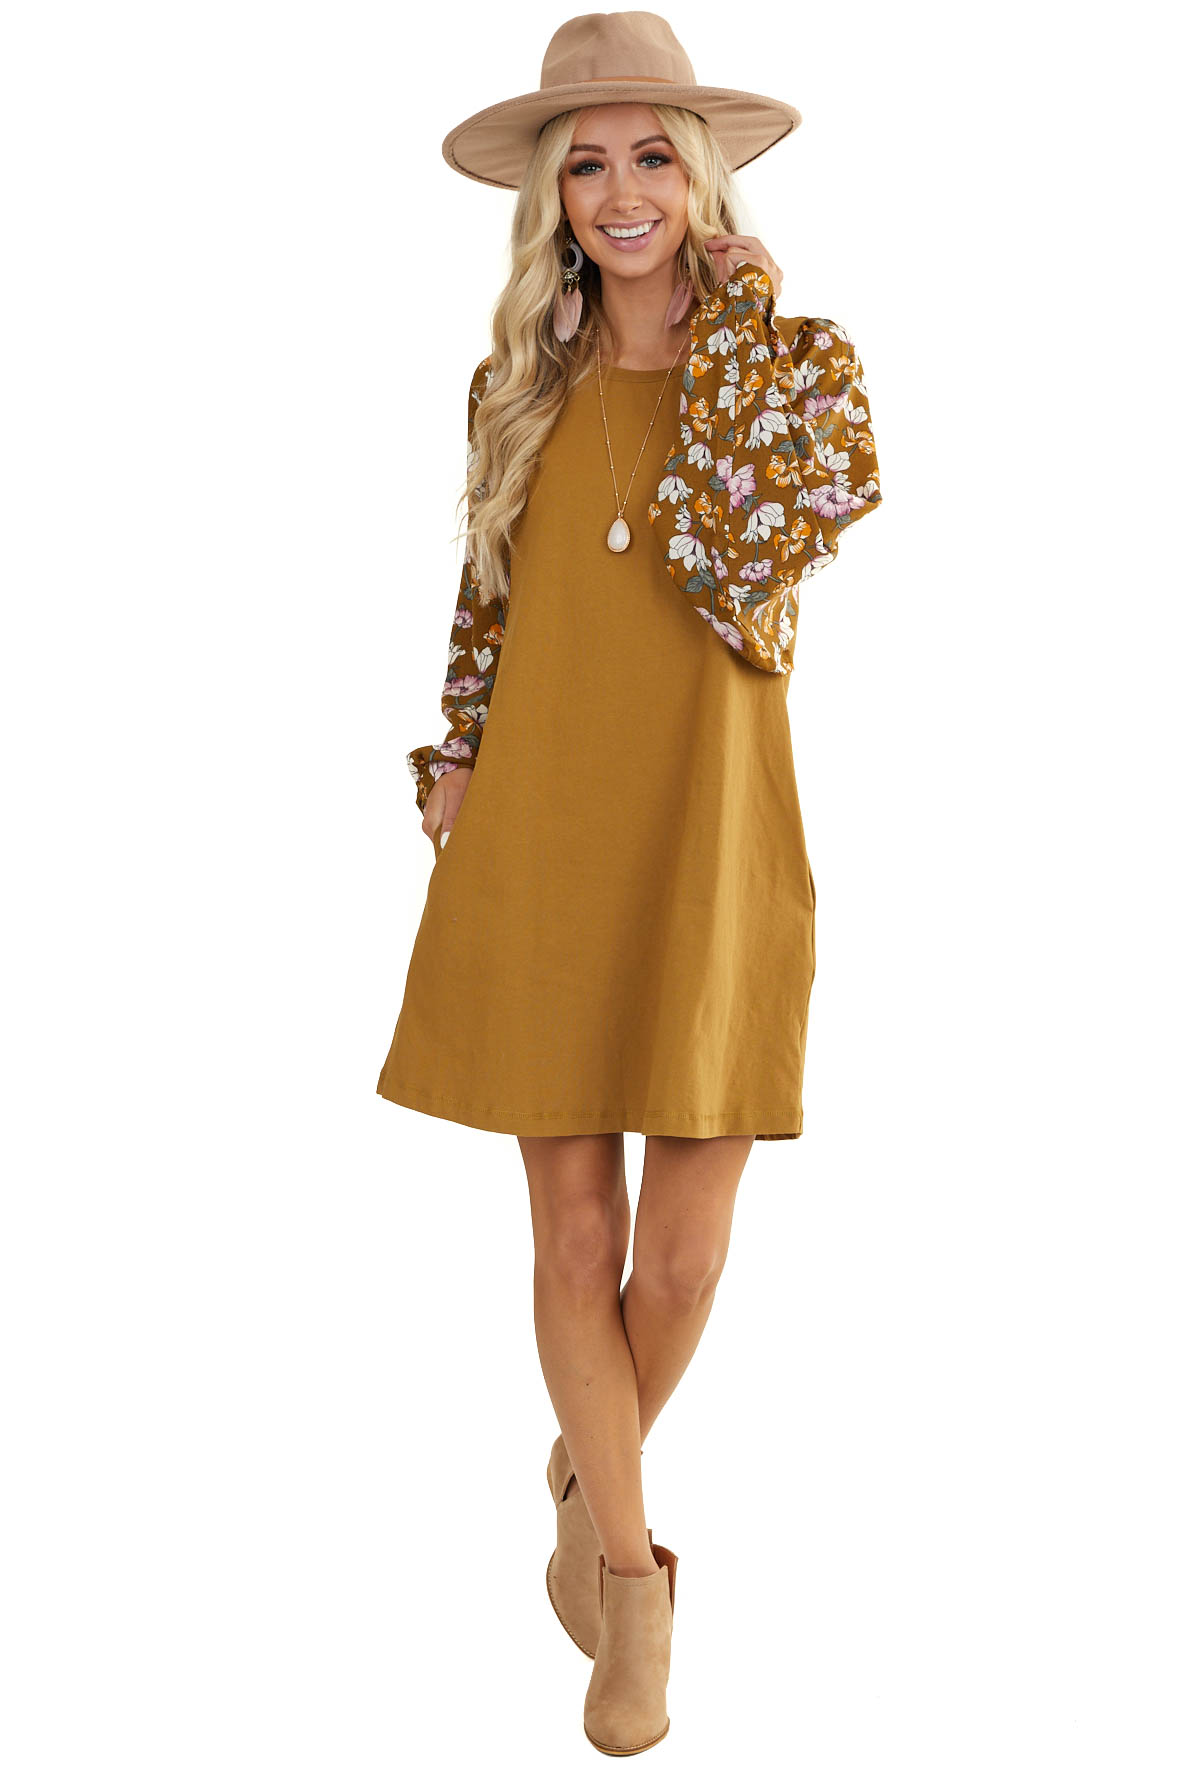 Mustard Dress with Long Floral Print Dolman Sleeves